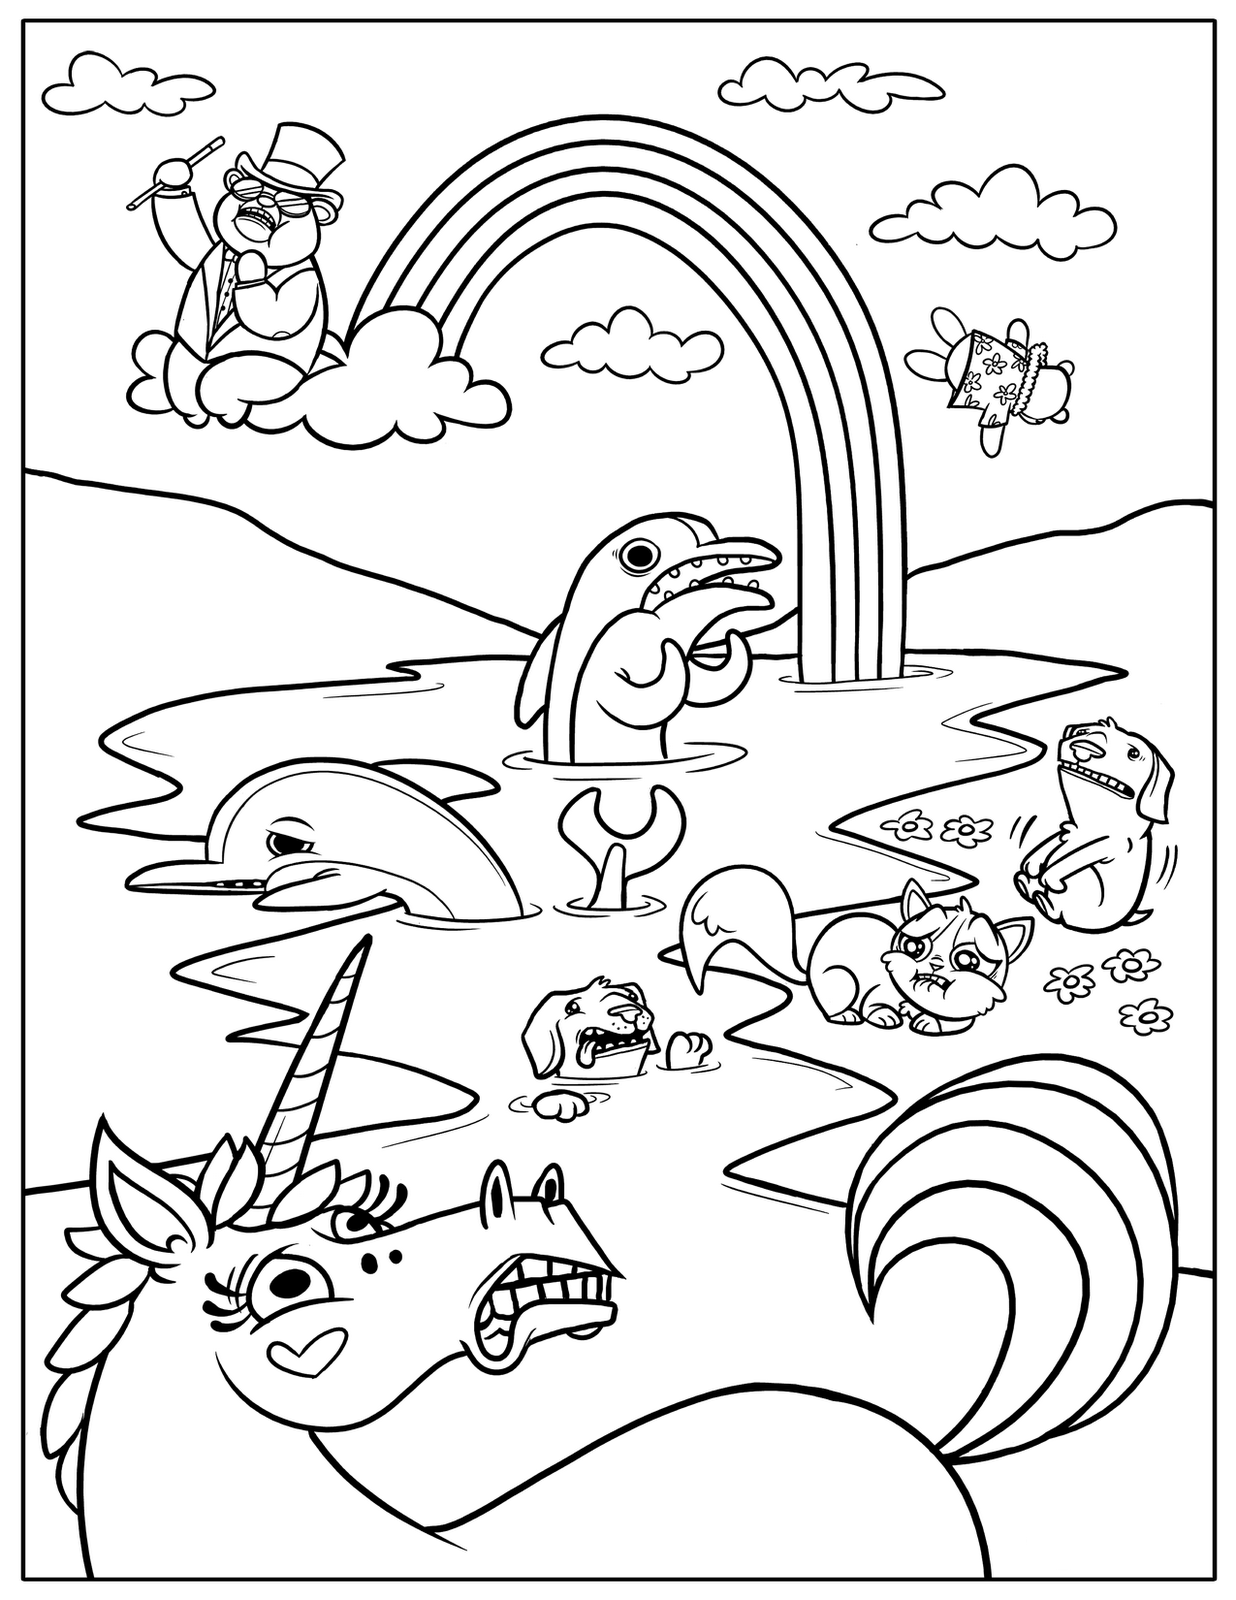 coloring page for kids printable dora coloring pages free printable coloring coloring kids for page